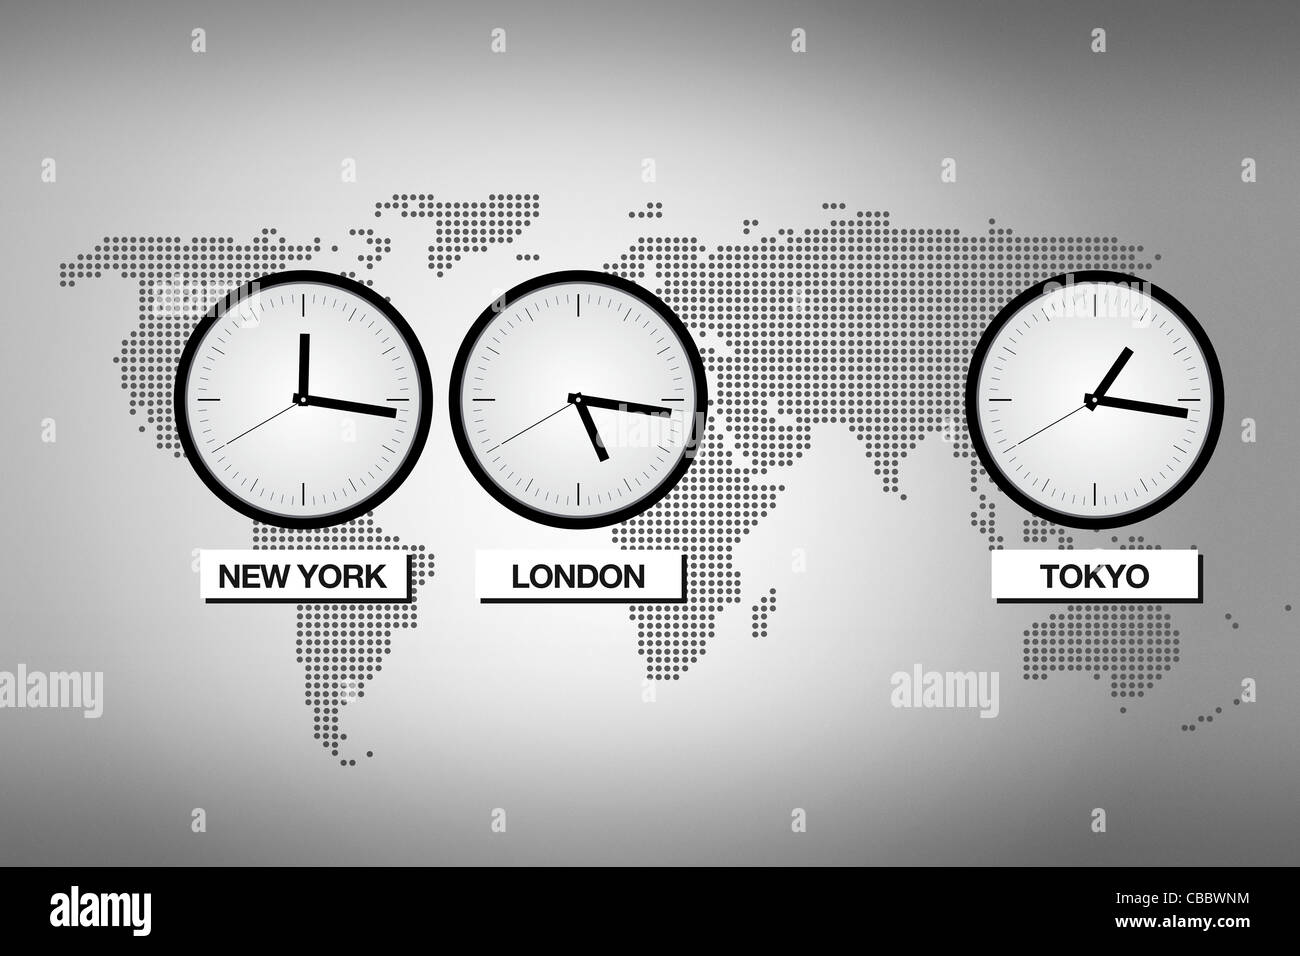 Abstract world map with clocks representing different time zones in abstract world map with clocks representing different time zones in big cities like tokyo london and new york gumiabroncs